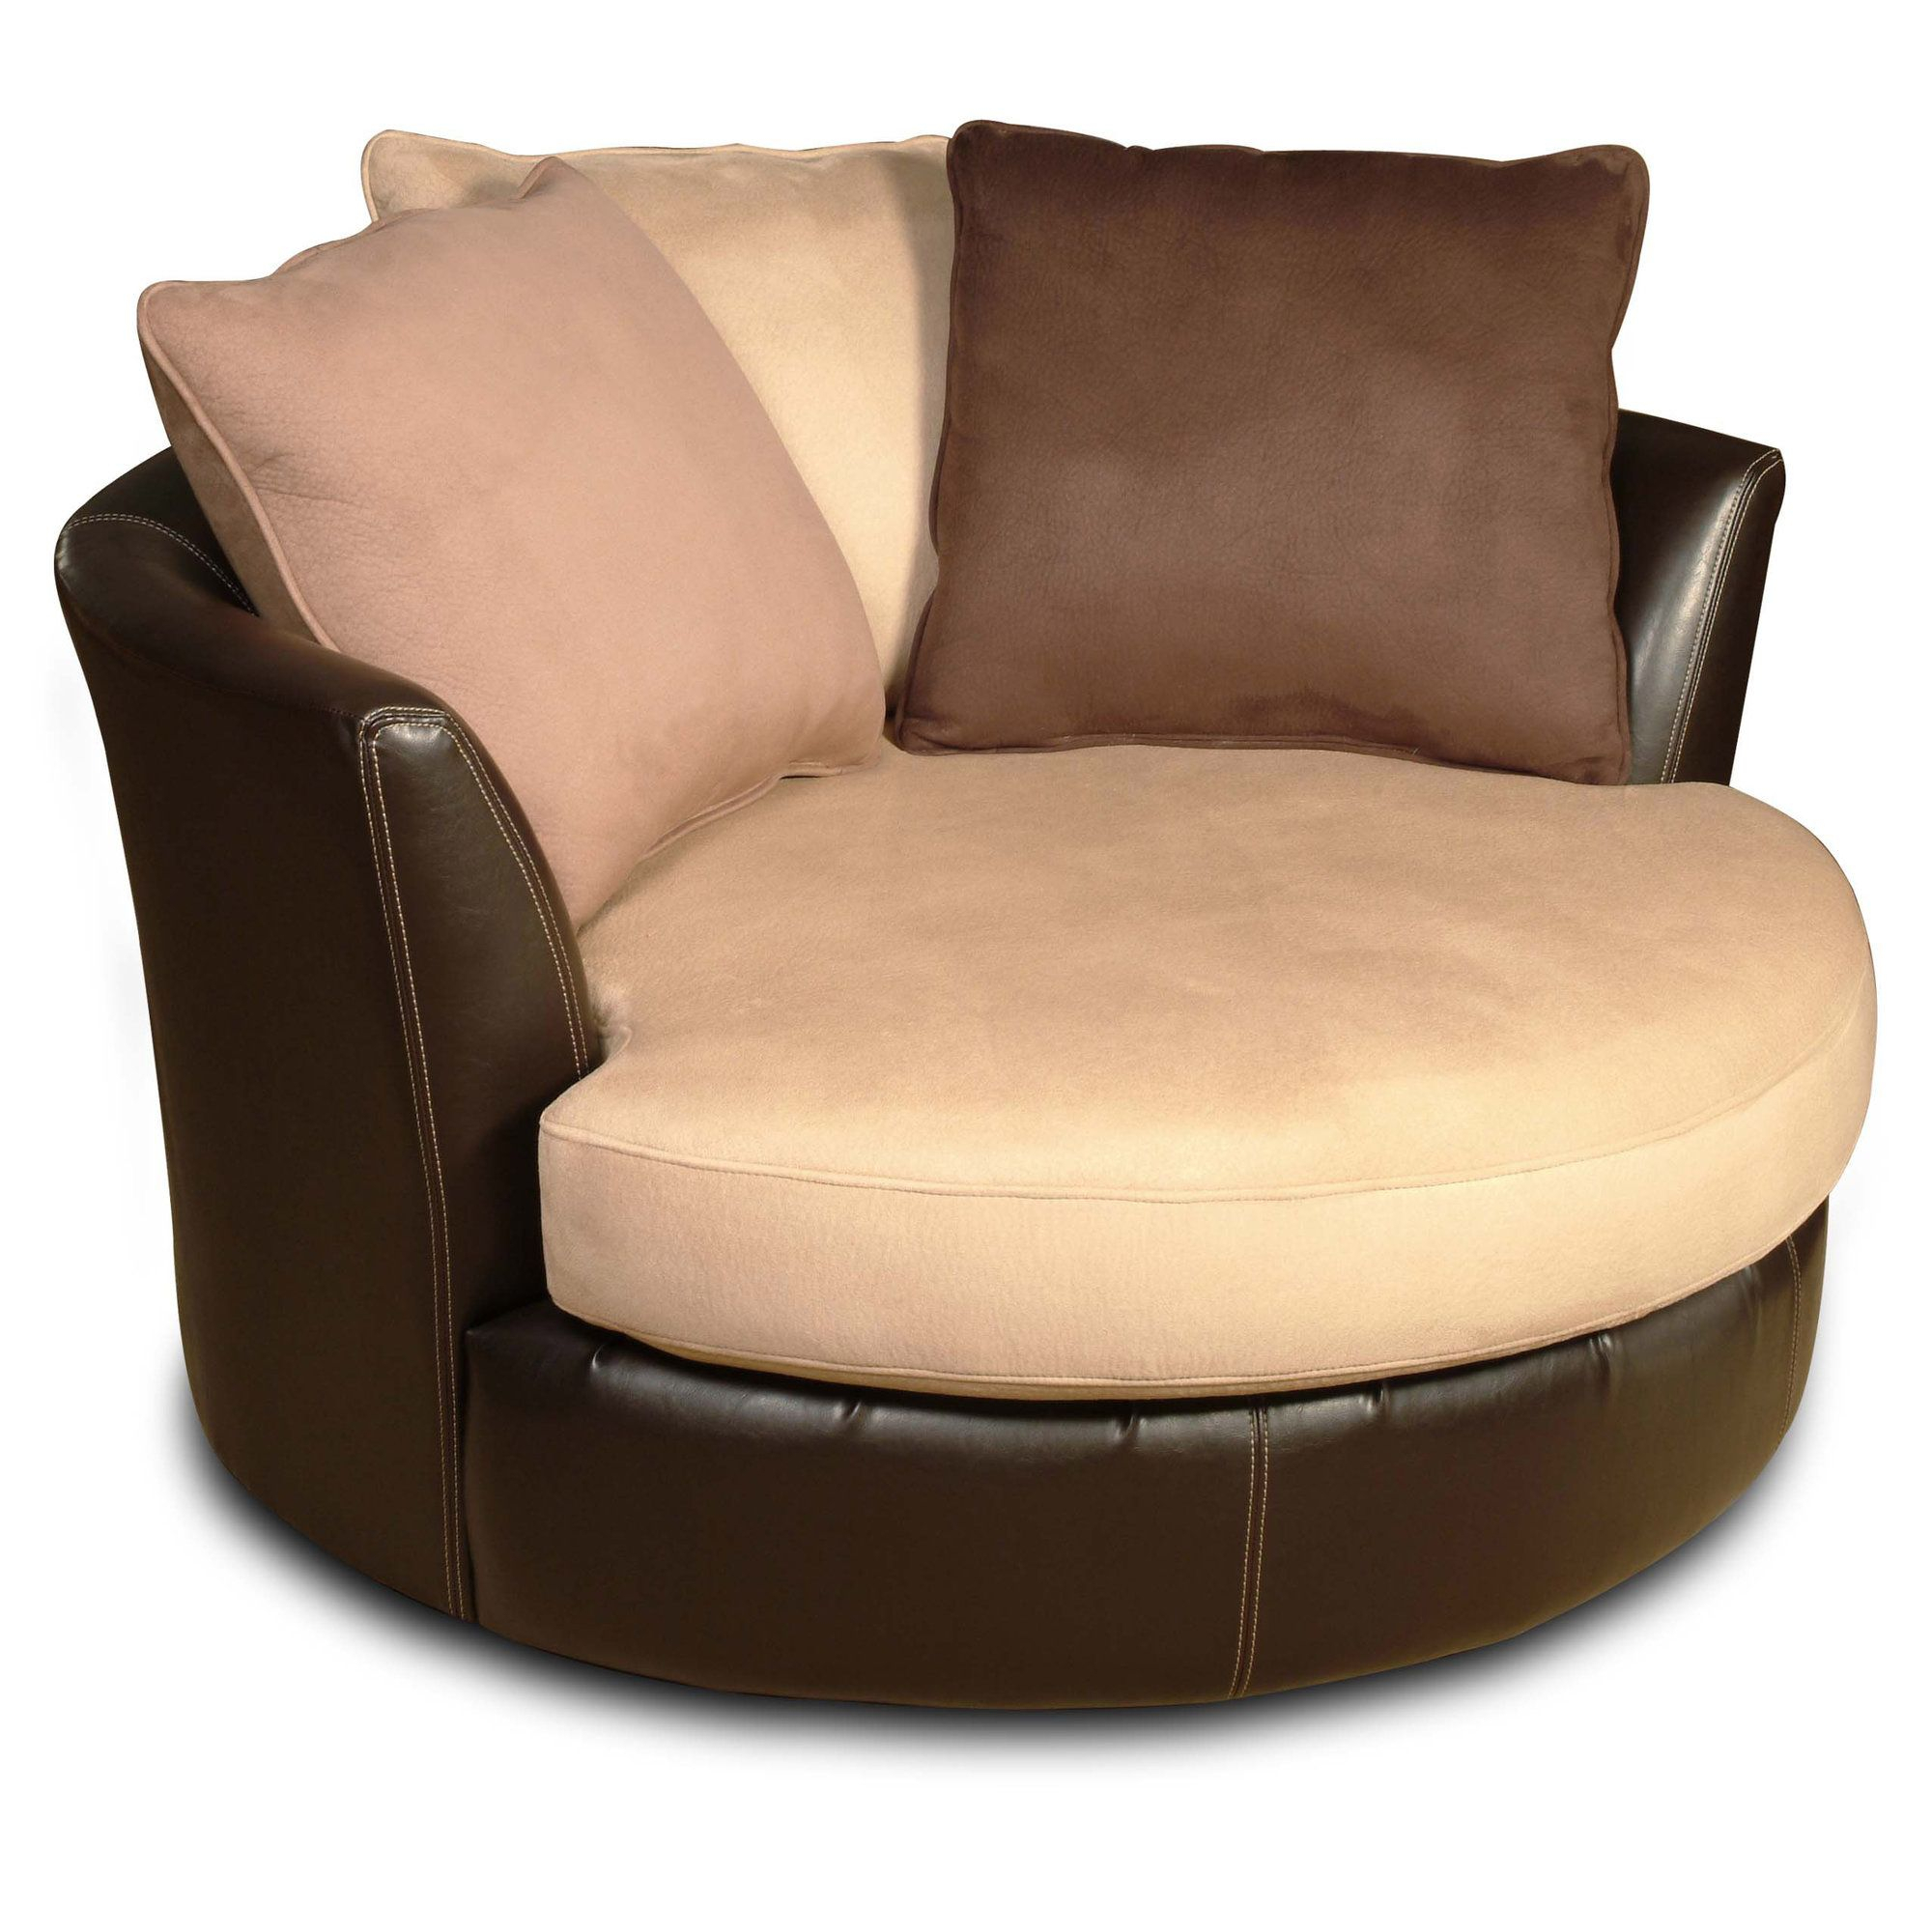 Oversized Round Swivel Barrel Chair | Chair Design For Round Swivel Sofa Chairs (View 4 of 15)